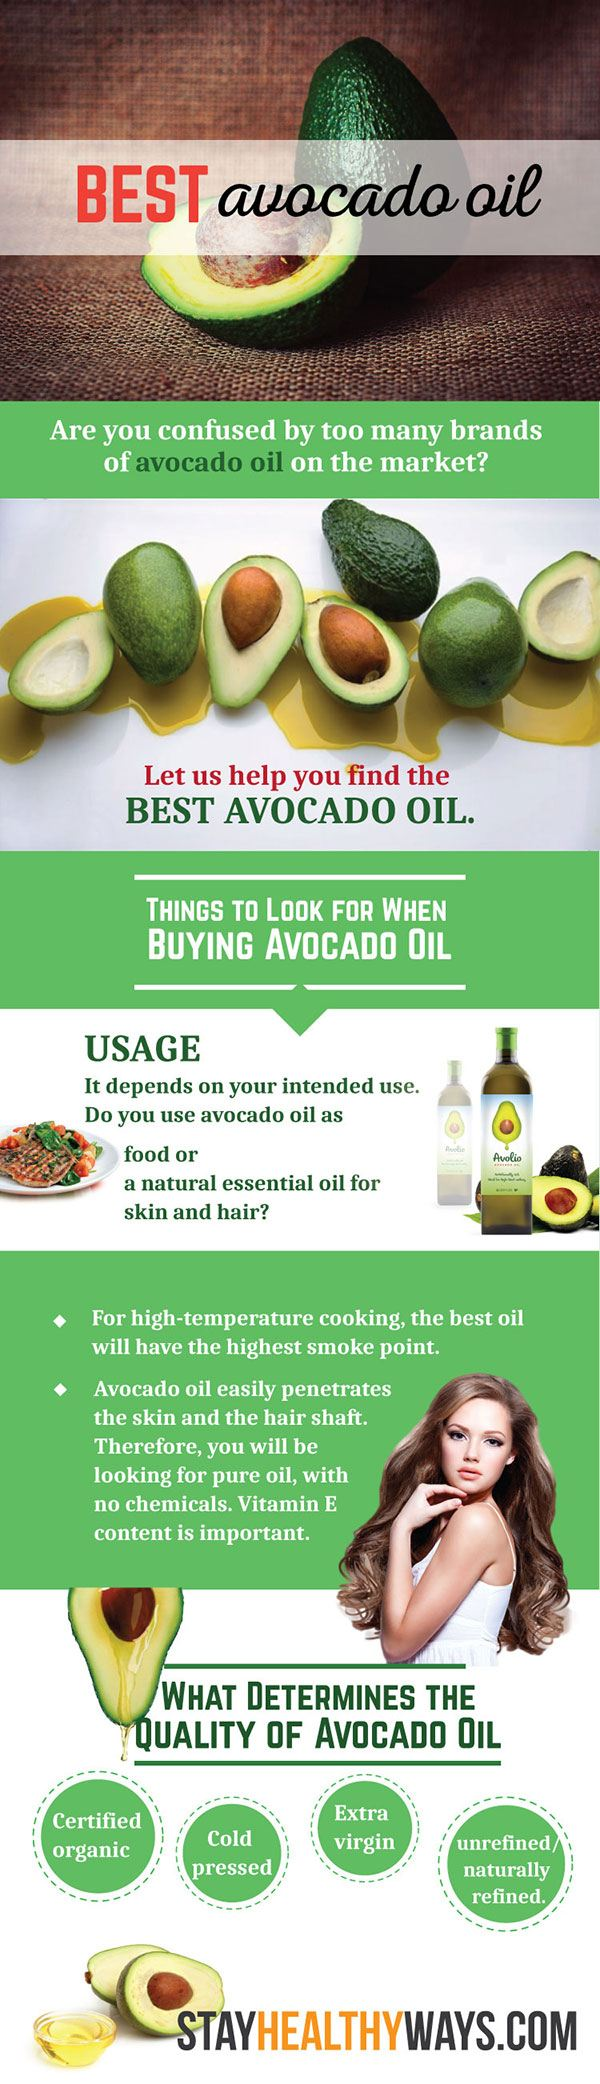 best avocado oil infographic